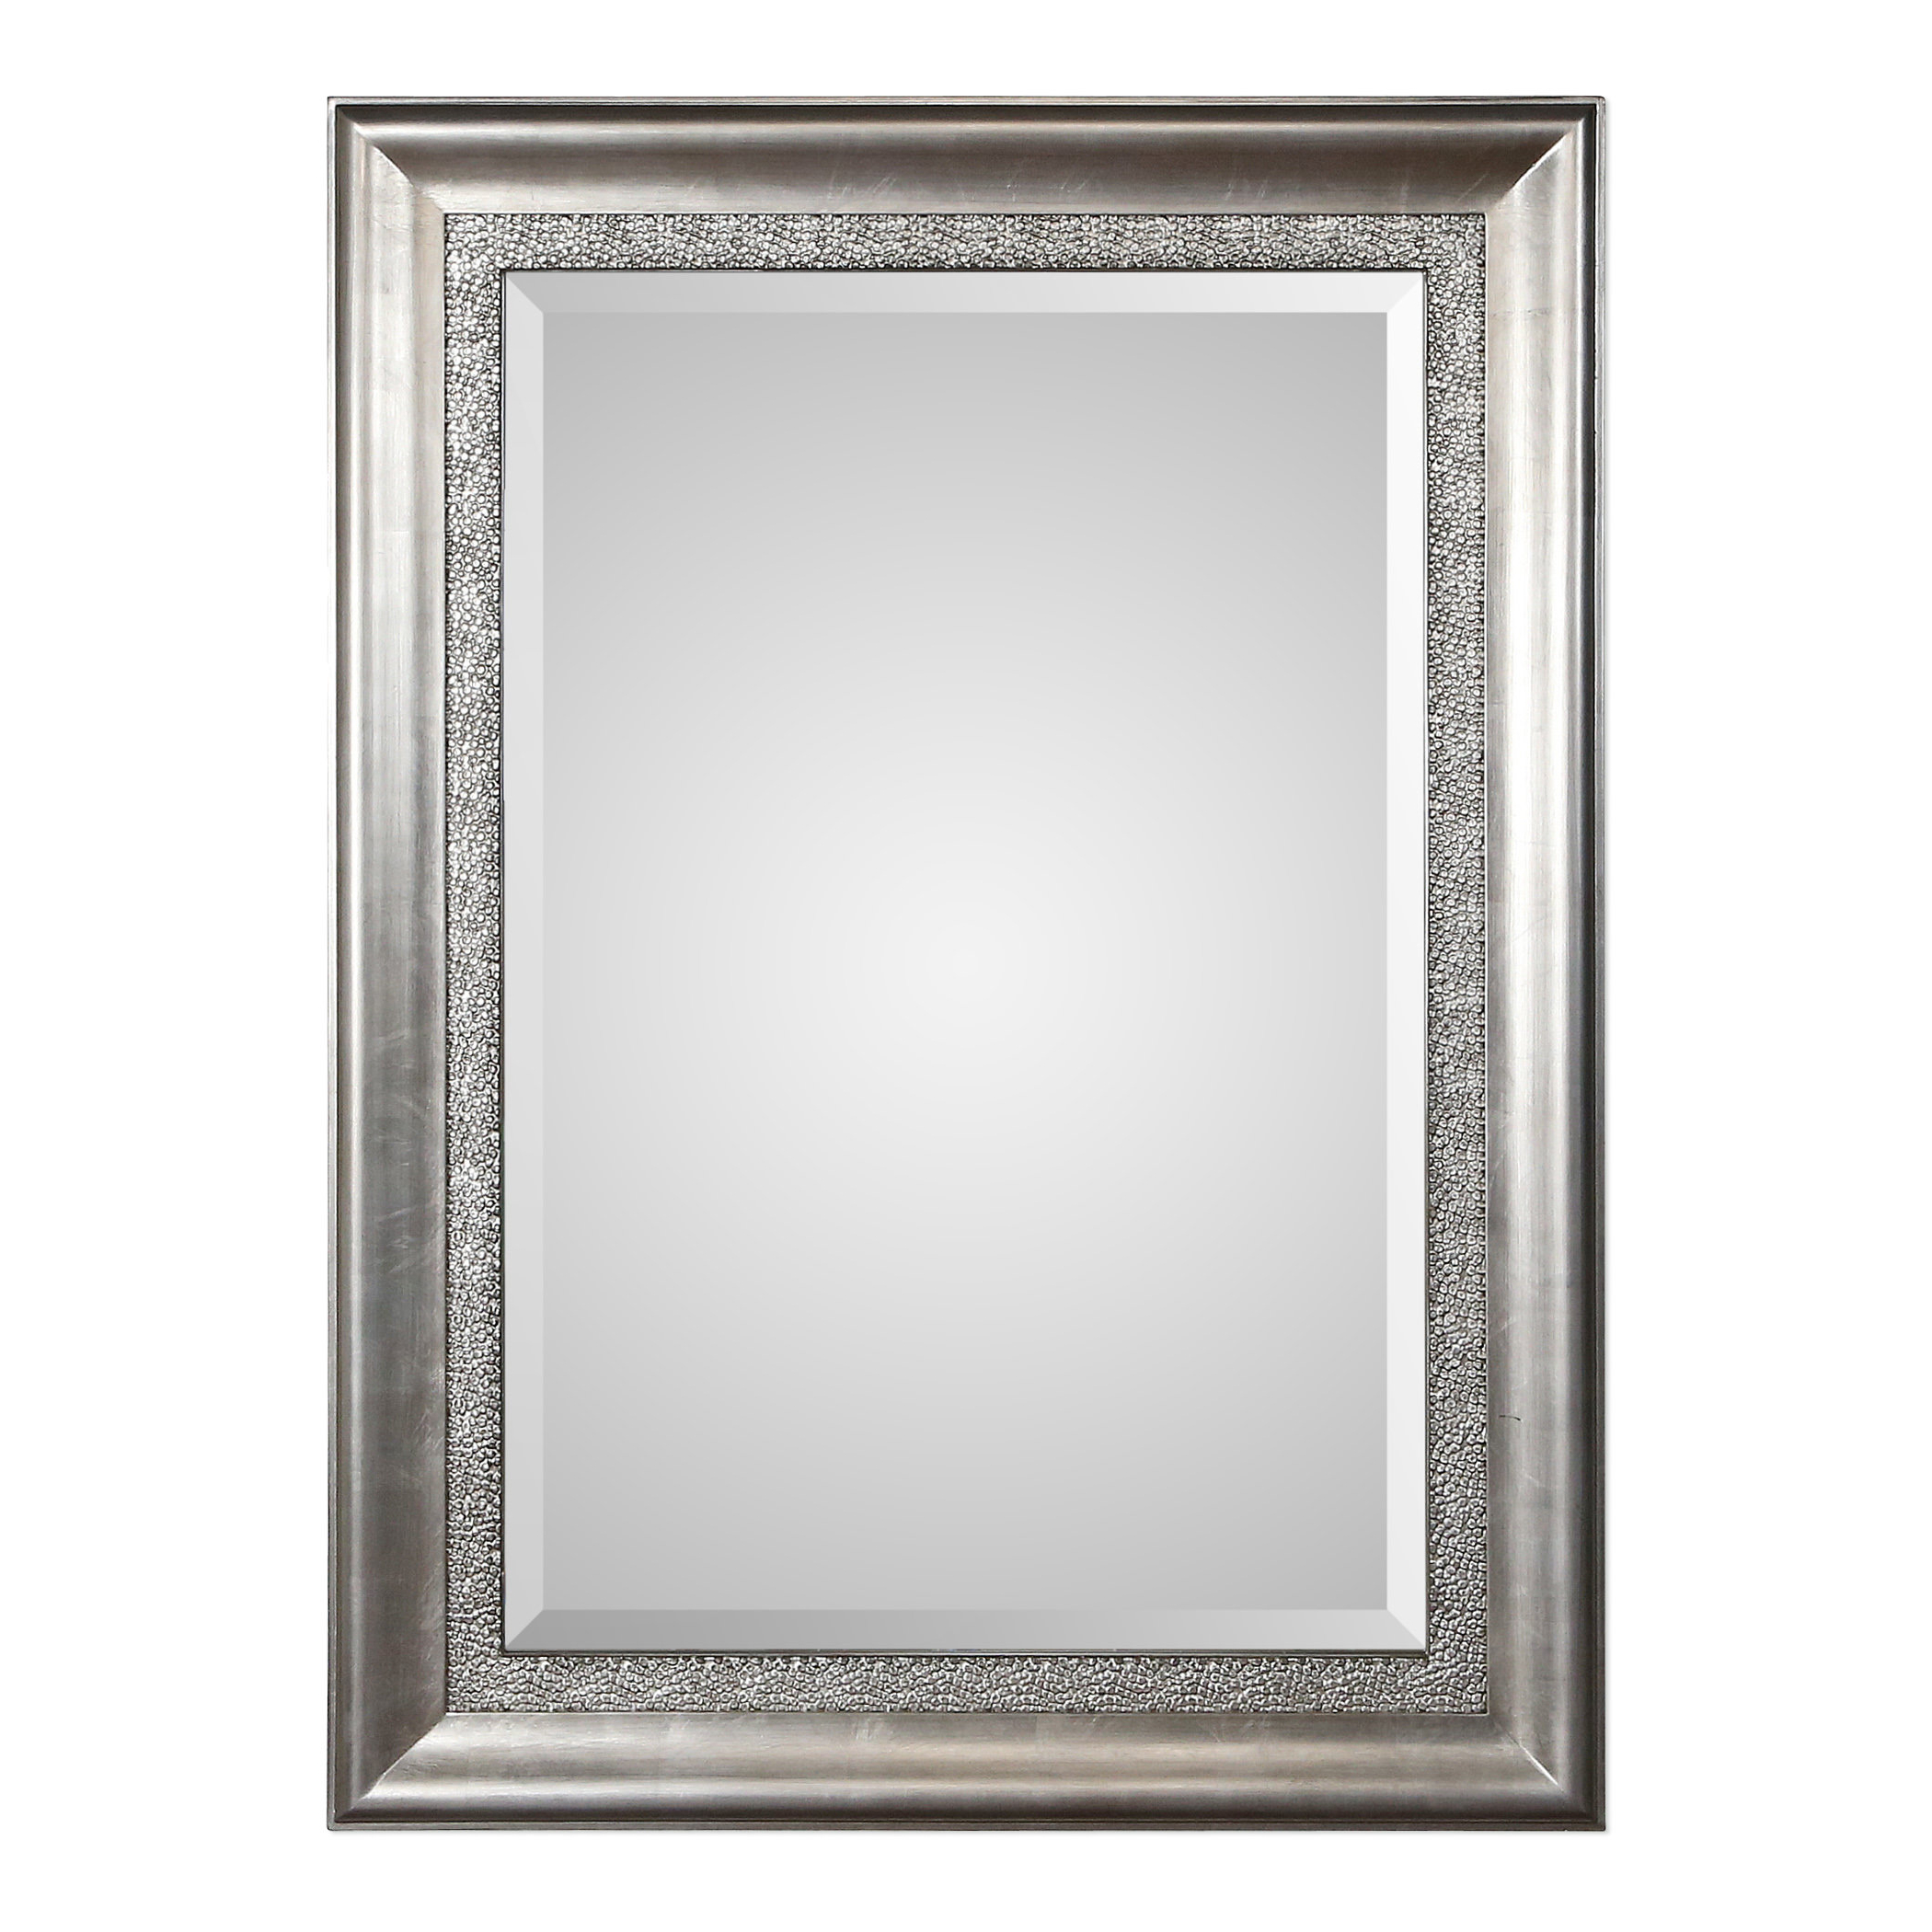 Eriq Framed Wall Mirrors In Recent Ellie Bevelled Silver Wall Mirror (View 9 of 20)